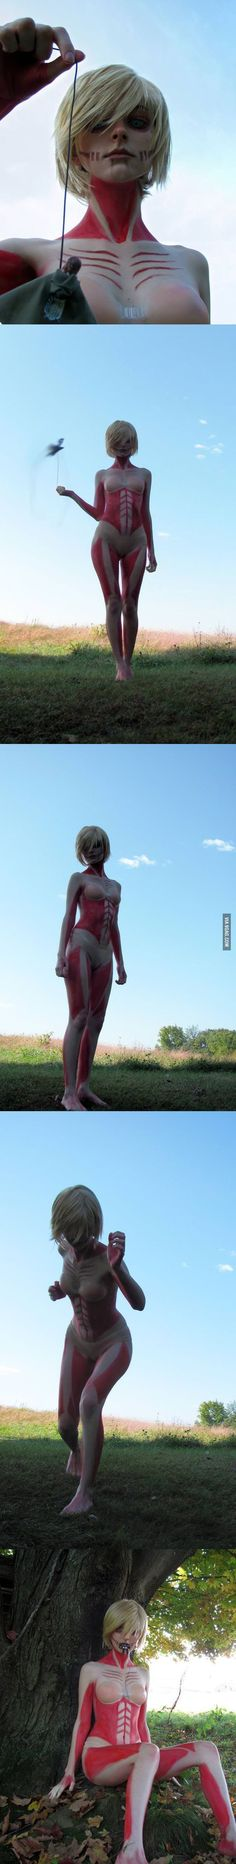 Amazing Attack on Titan cosplay. 9gag.com: